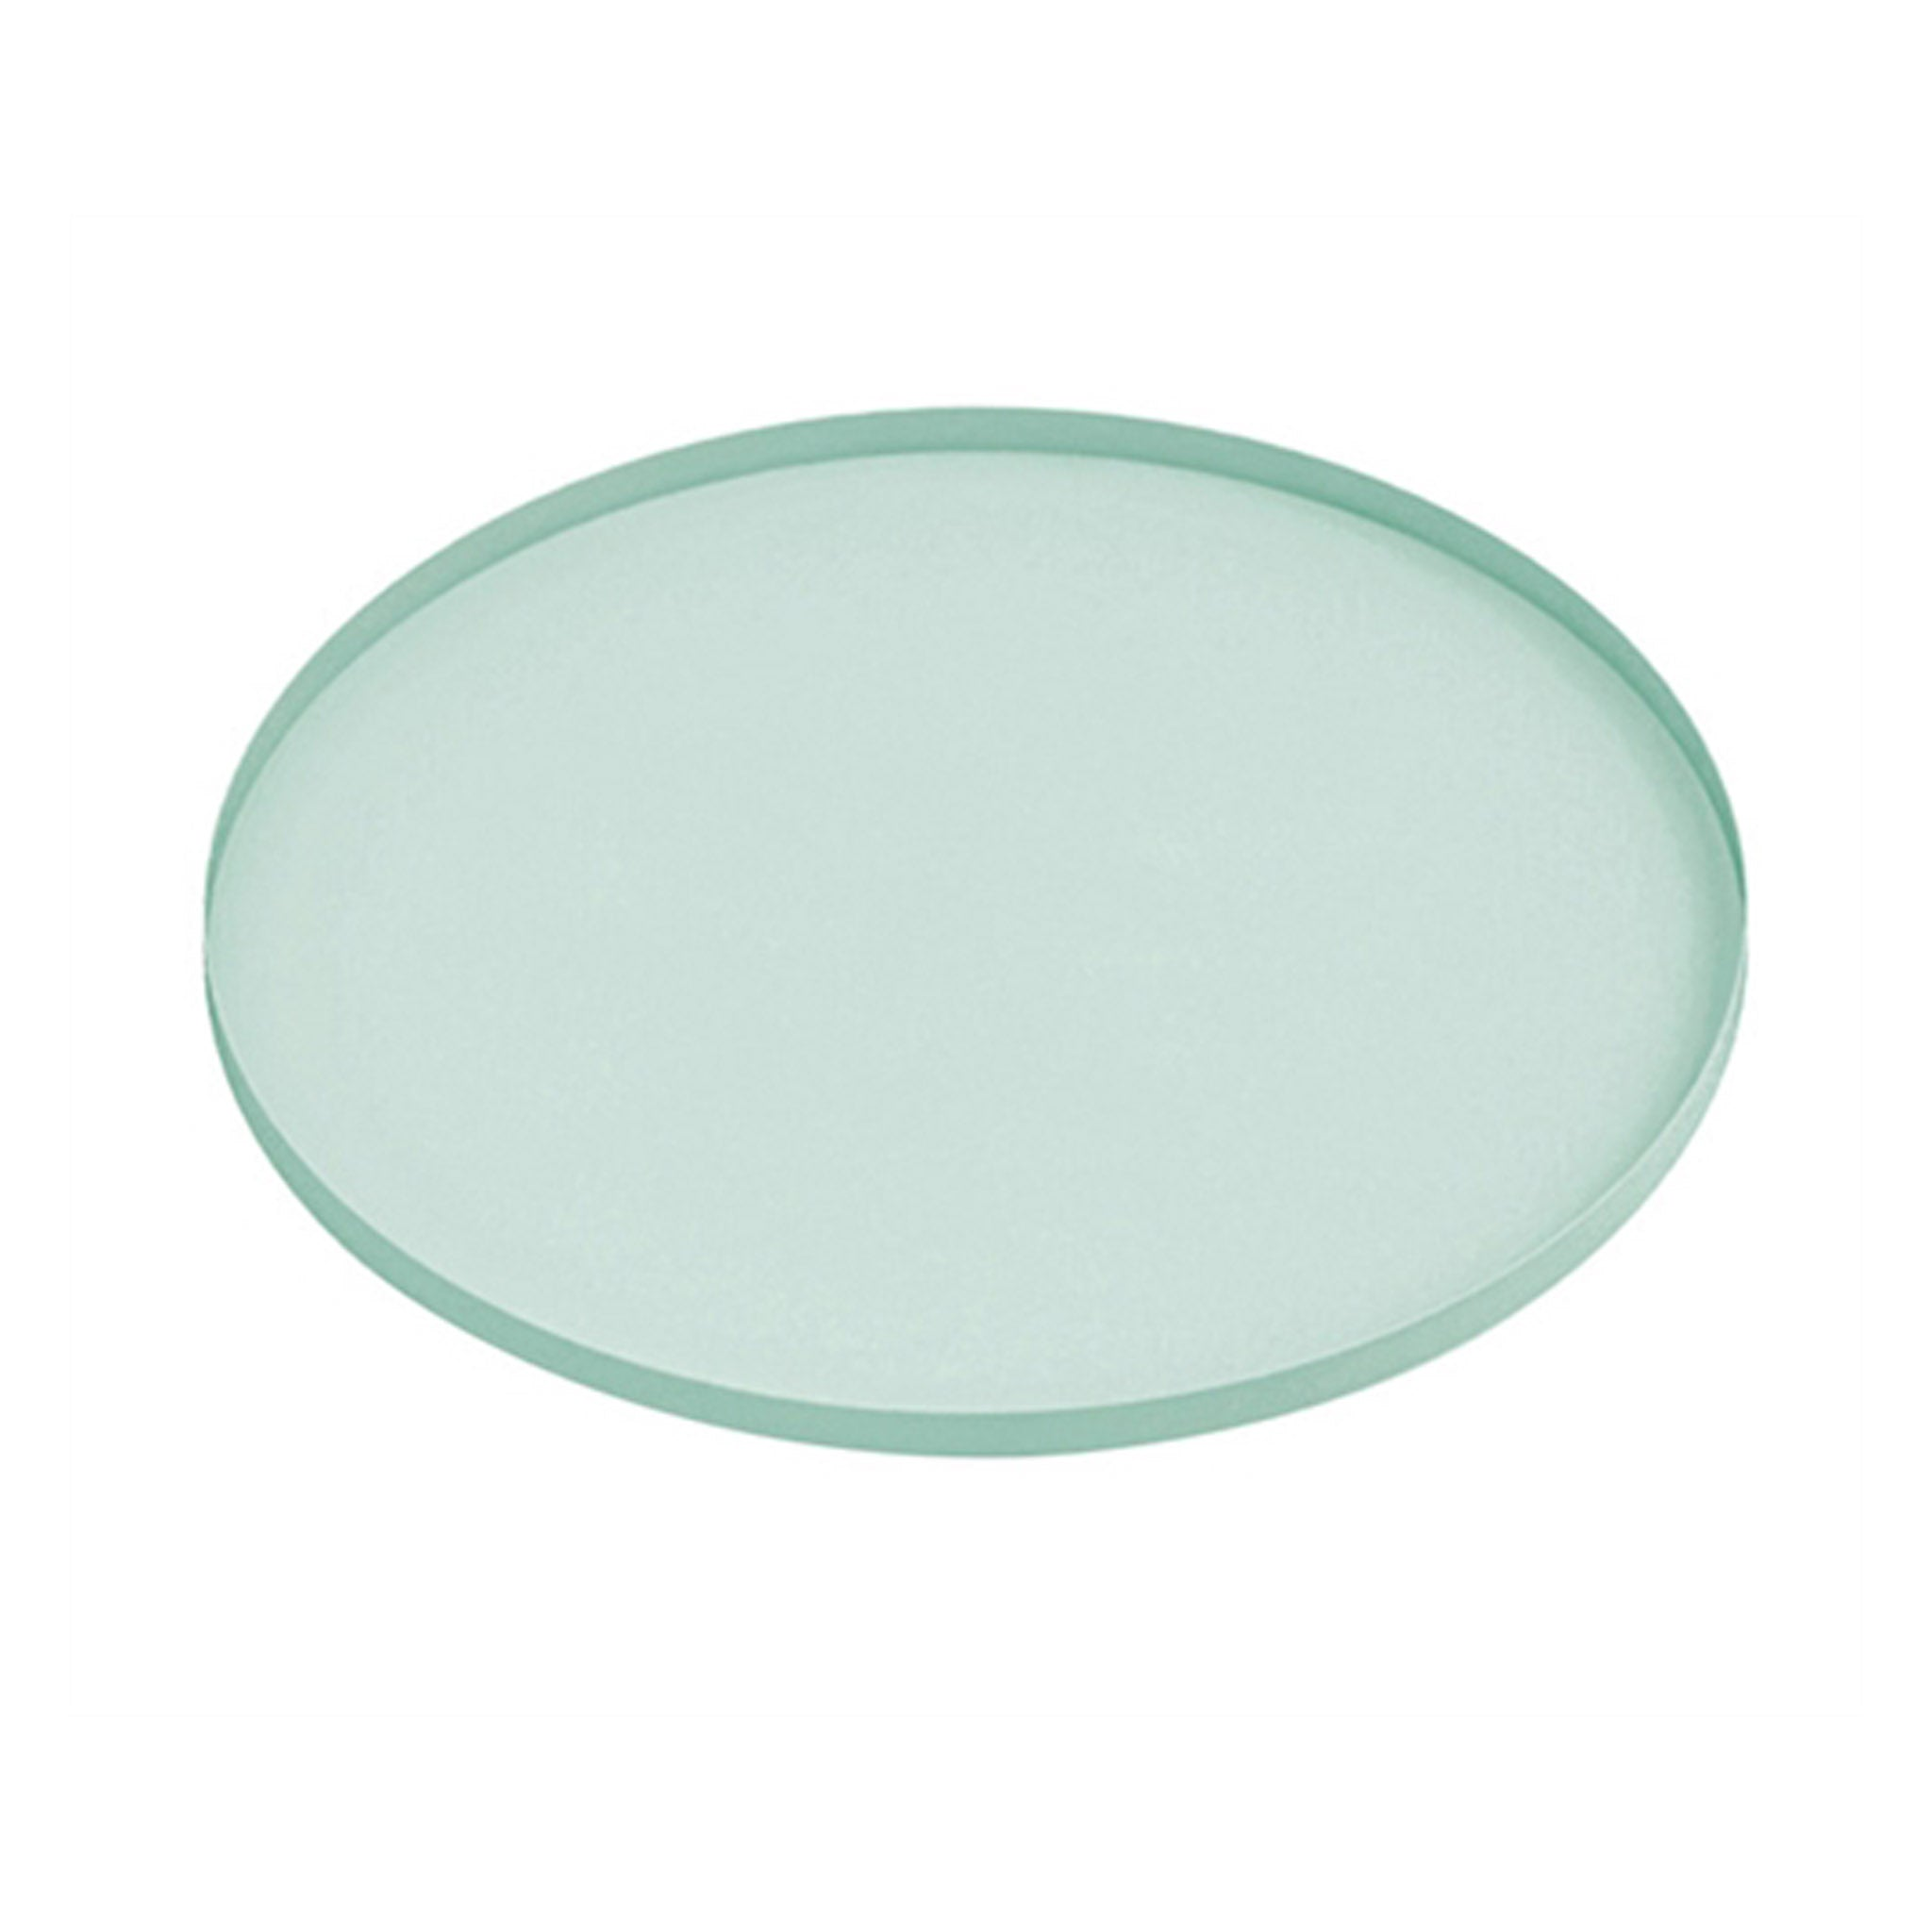 Round Iron Tray - Mint Green - Five And Dime